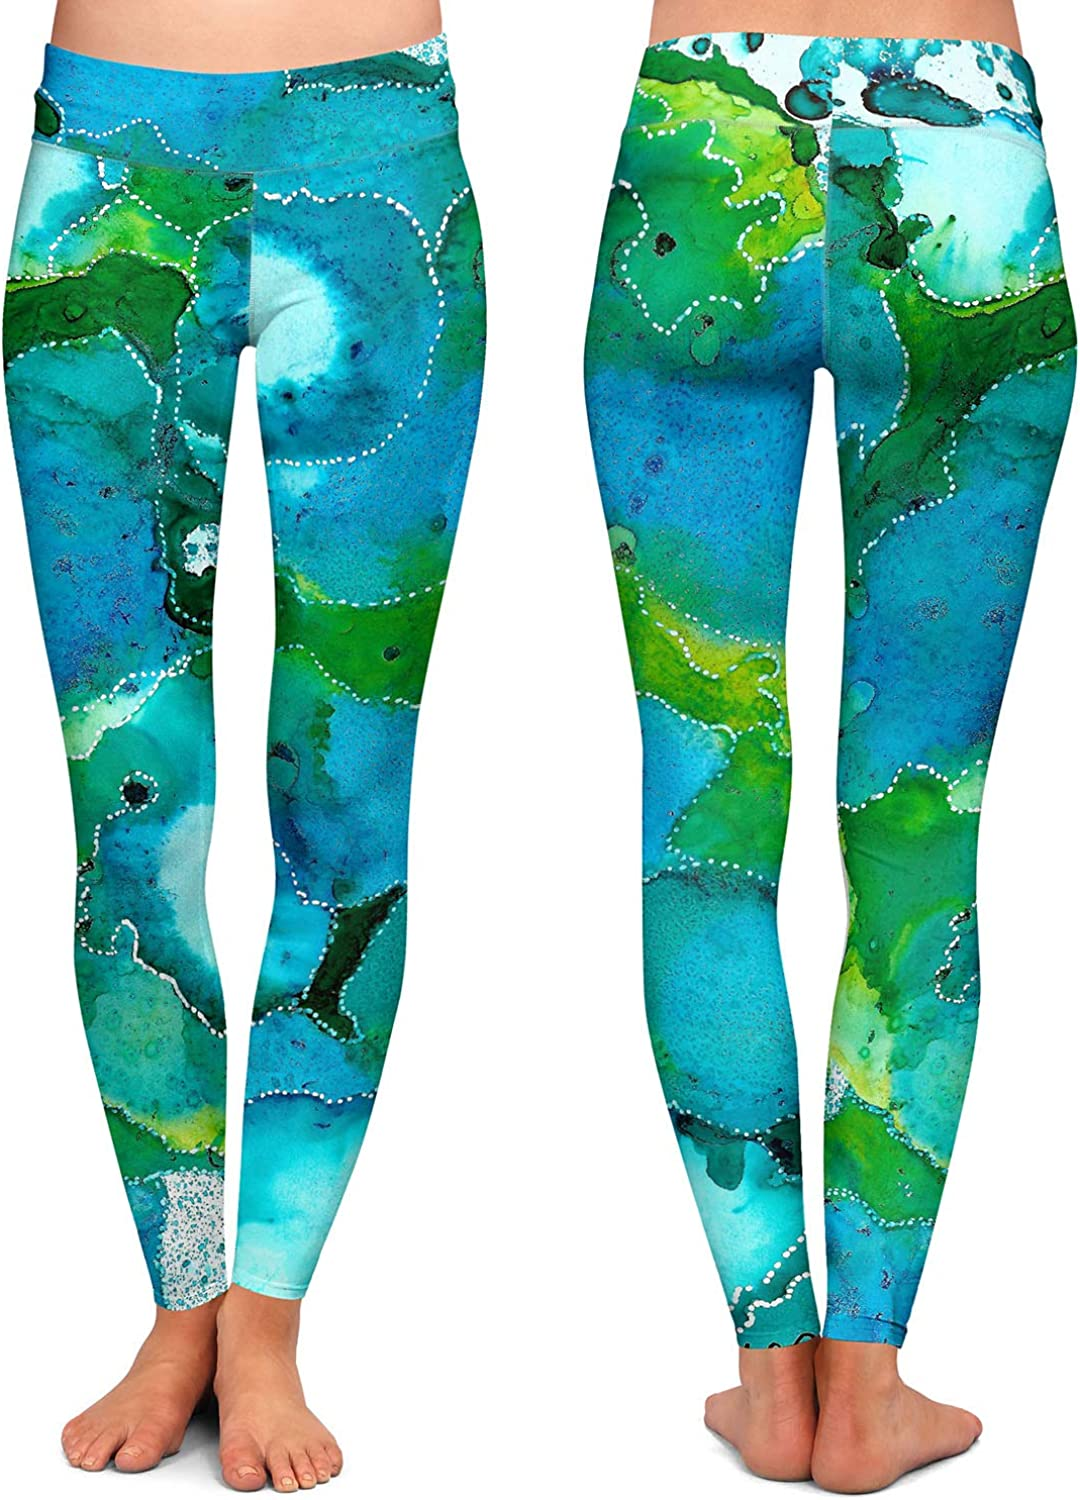 Athletic Yoga Leggings from DiaNoche Designs by Valerie Lorimer Falling in Love